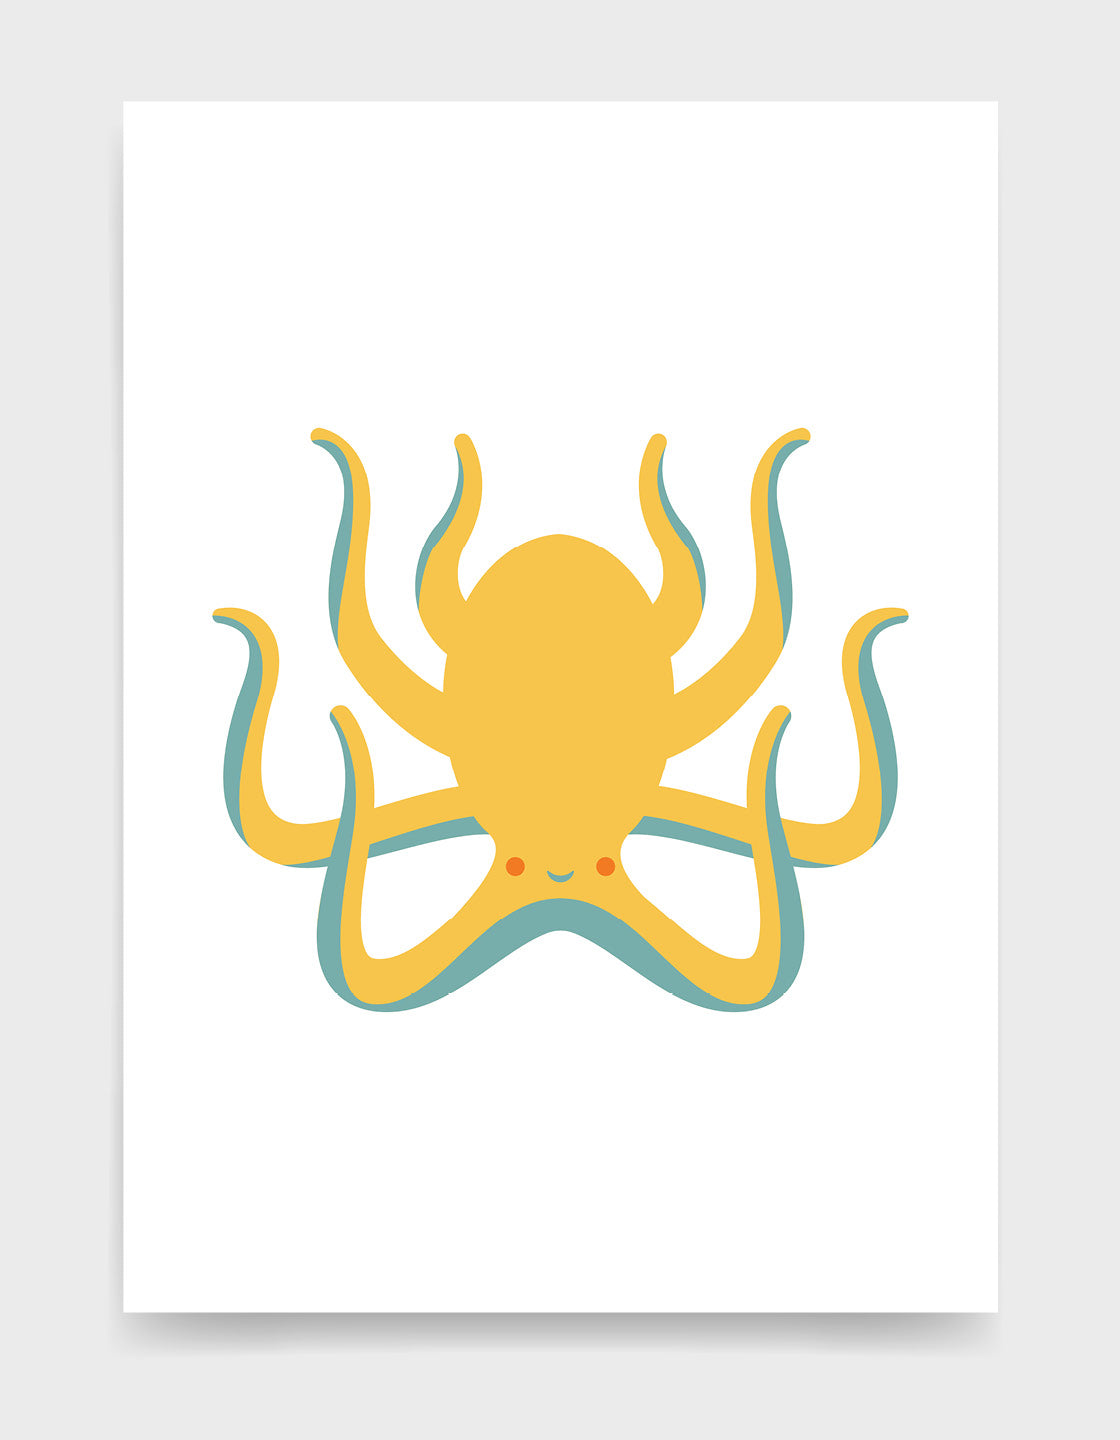 Kids octopus art print depicts a cute yellow octopus with a smiling face and blue underneath against a white background